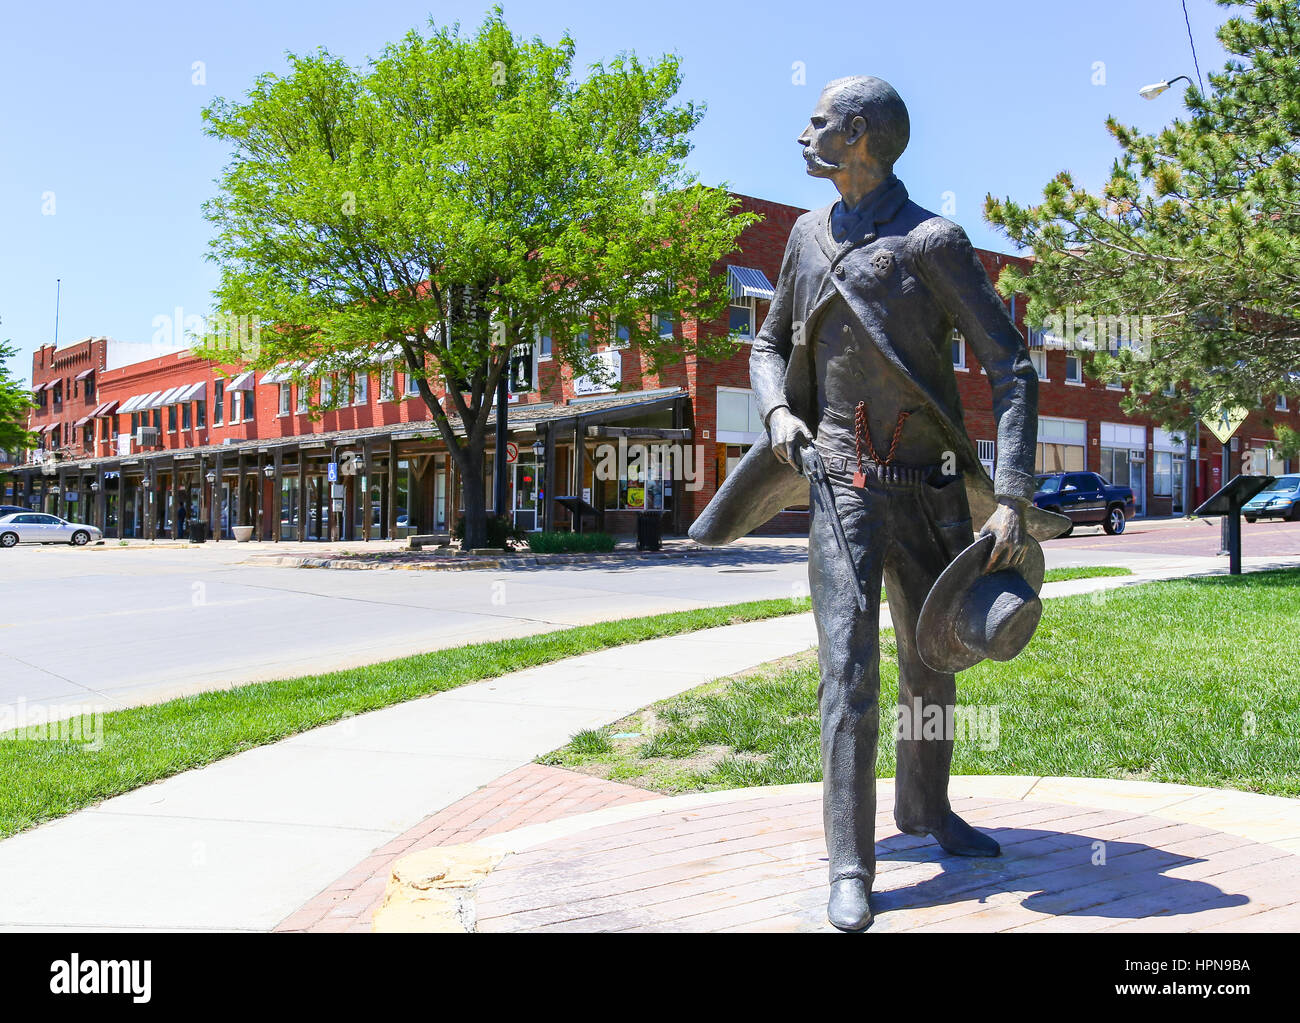 DODGE CITY, USA - MAY 17, 2015: Bronze sculpture of Wyatt Earp as part of the Trail of Fame in the historic district - Stock Image